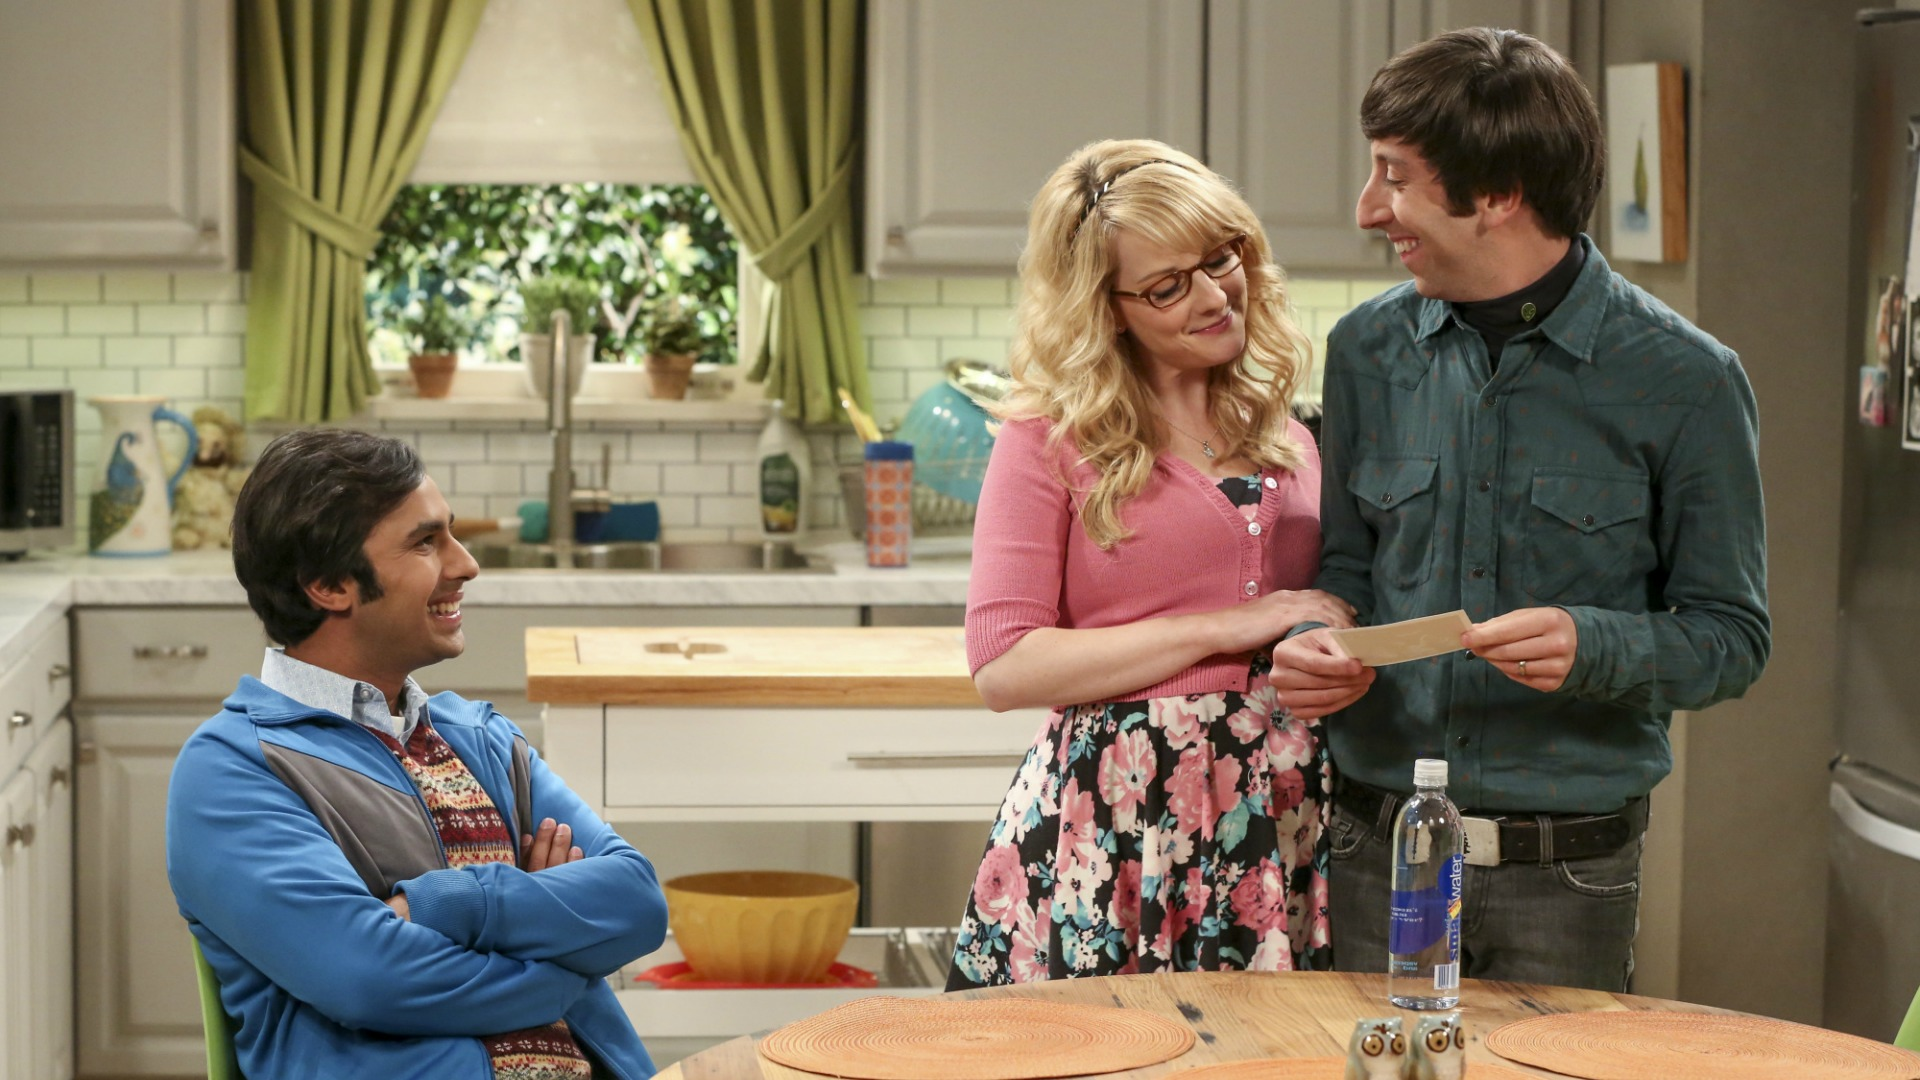 Howard and Bernadette share a sweet moment while Raj sits at the table.